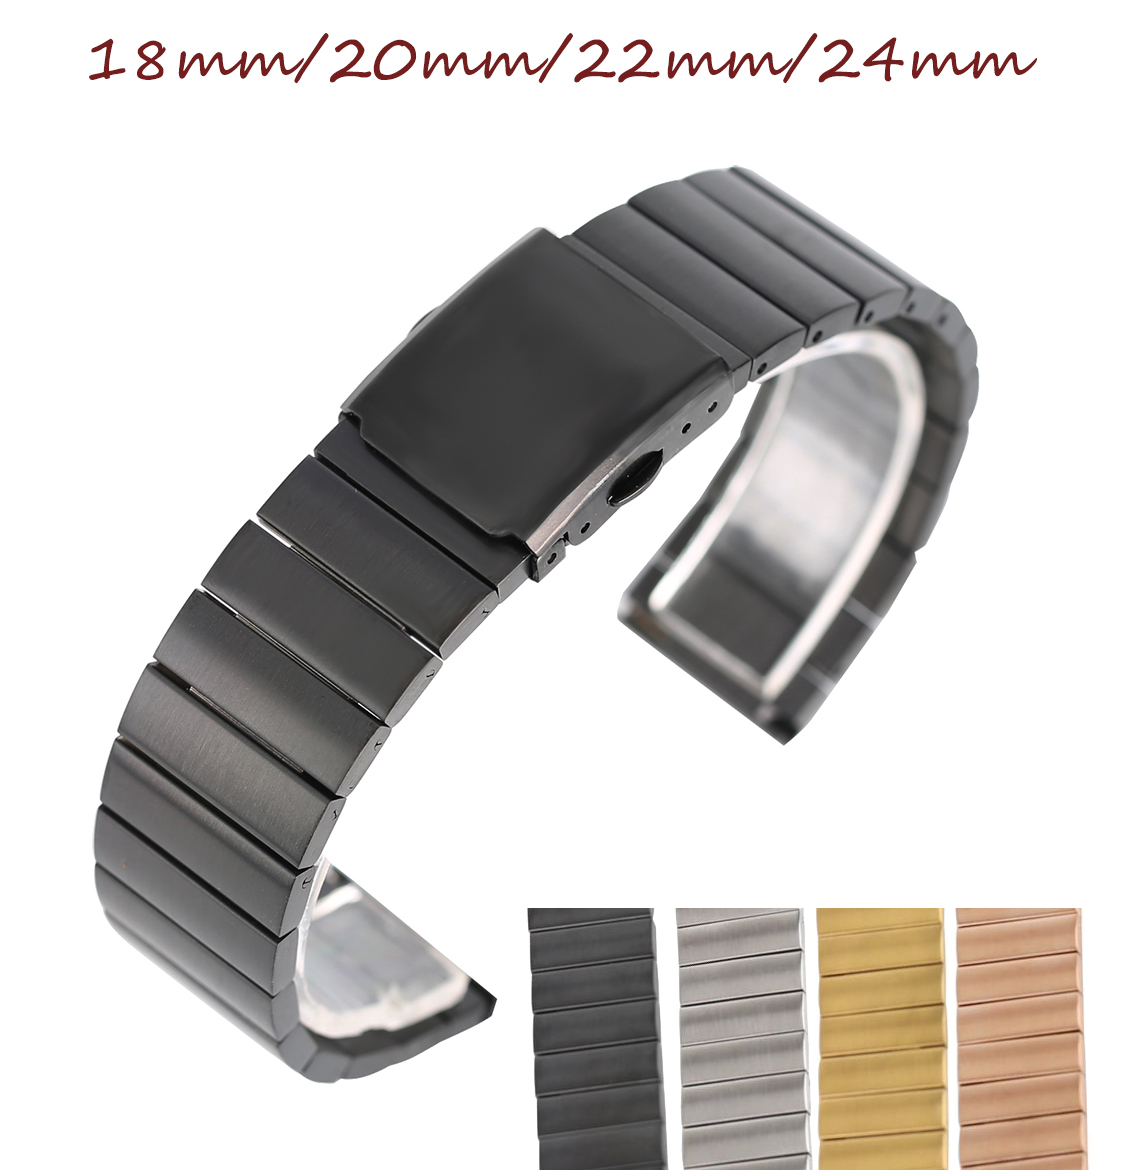 18/20/22/24mm Mens Watch Stainless Steel Band Strap Bracelet Clasp  +2 Spring Bars Solid Link Replacement Black Silver watchband 18 20 22mm genuine leather outdoor replacement black watch strap men band soft stainless steel butterfly buckle 2 spring bars